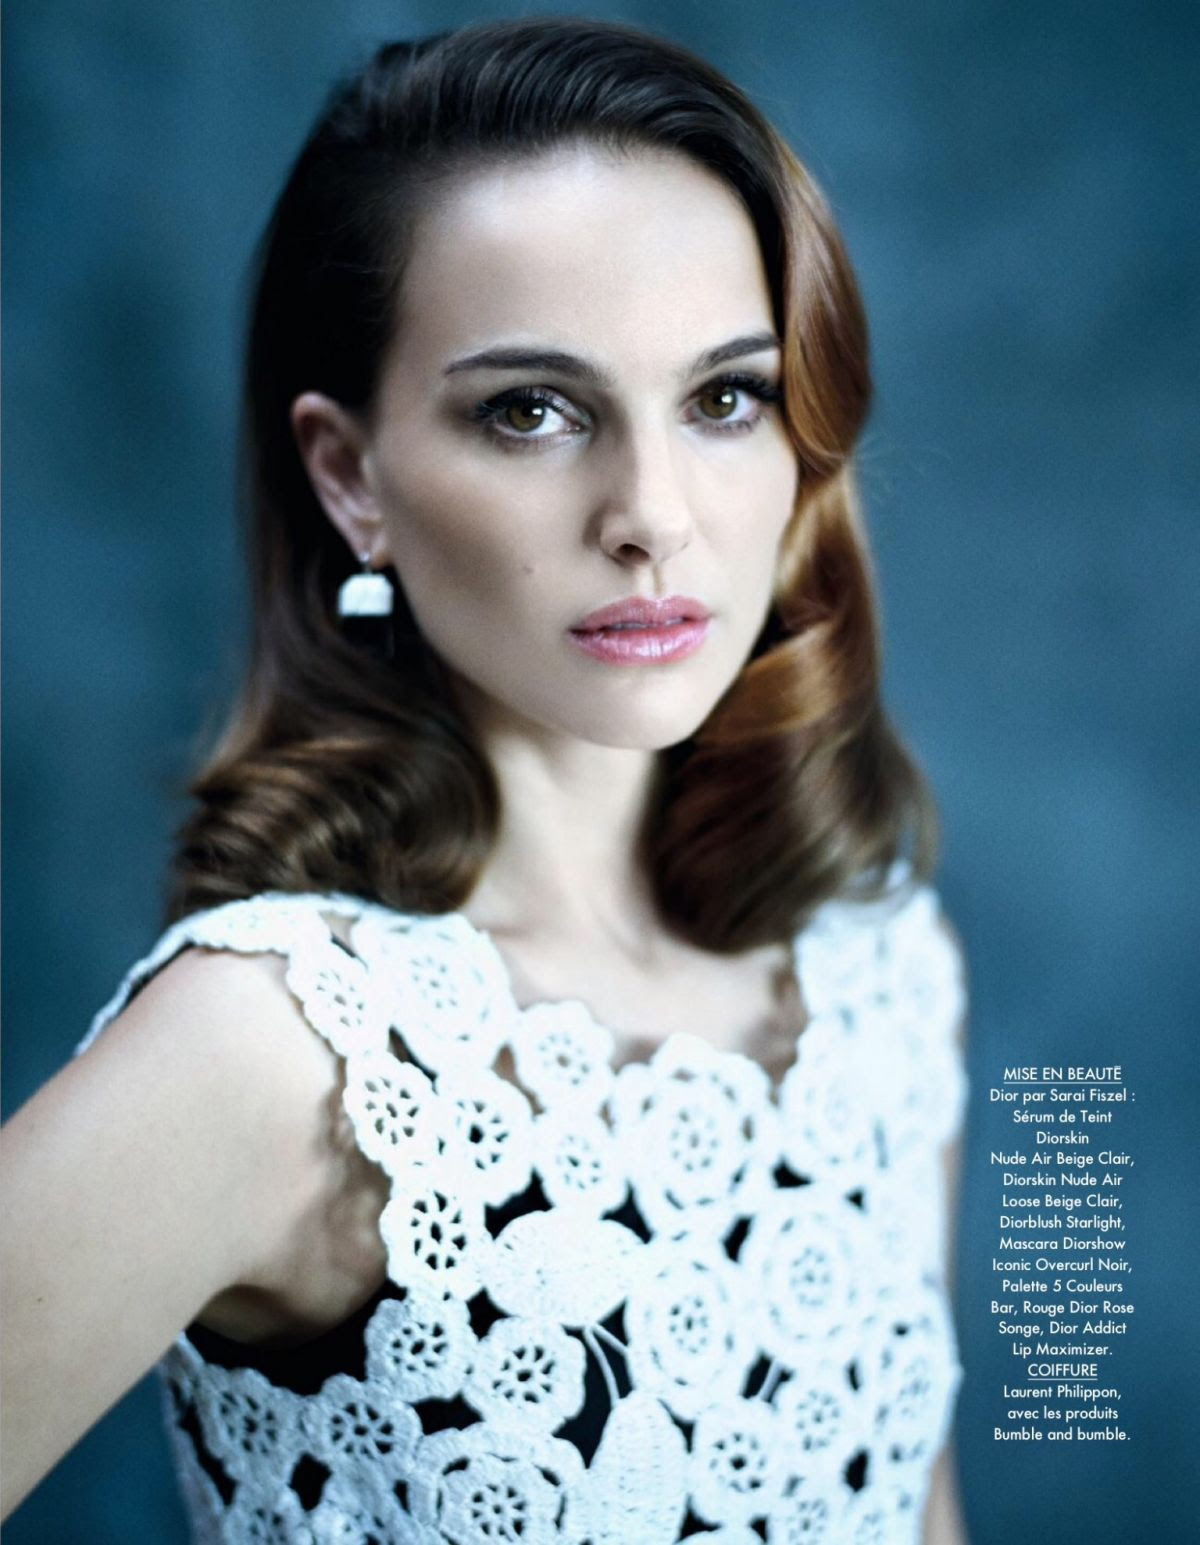 NATALIE PORTMAN in Elle Magazine, February/March 2015 Issue